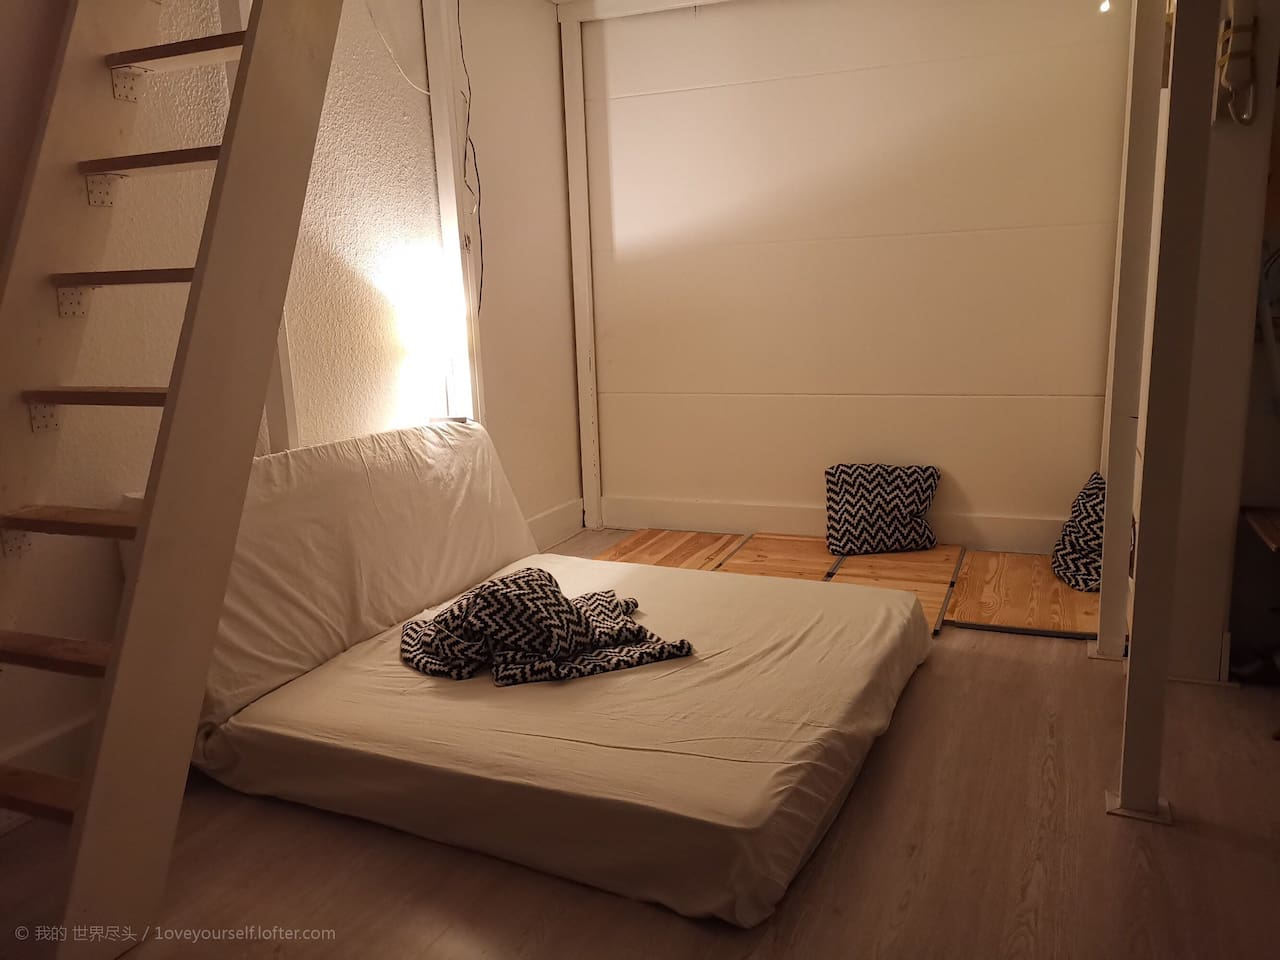 The place shown in this picture belongs to you. I sleep in the loft.